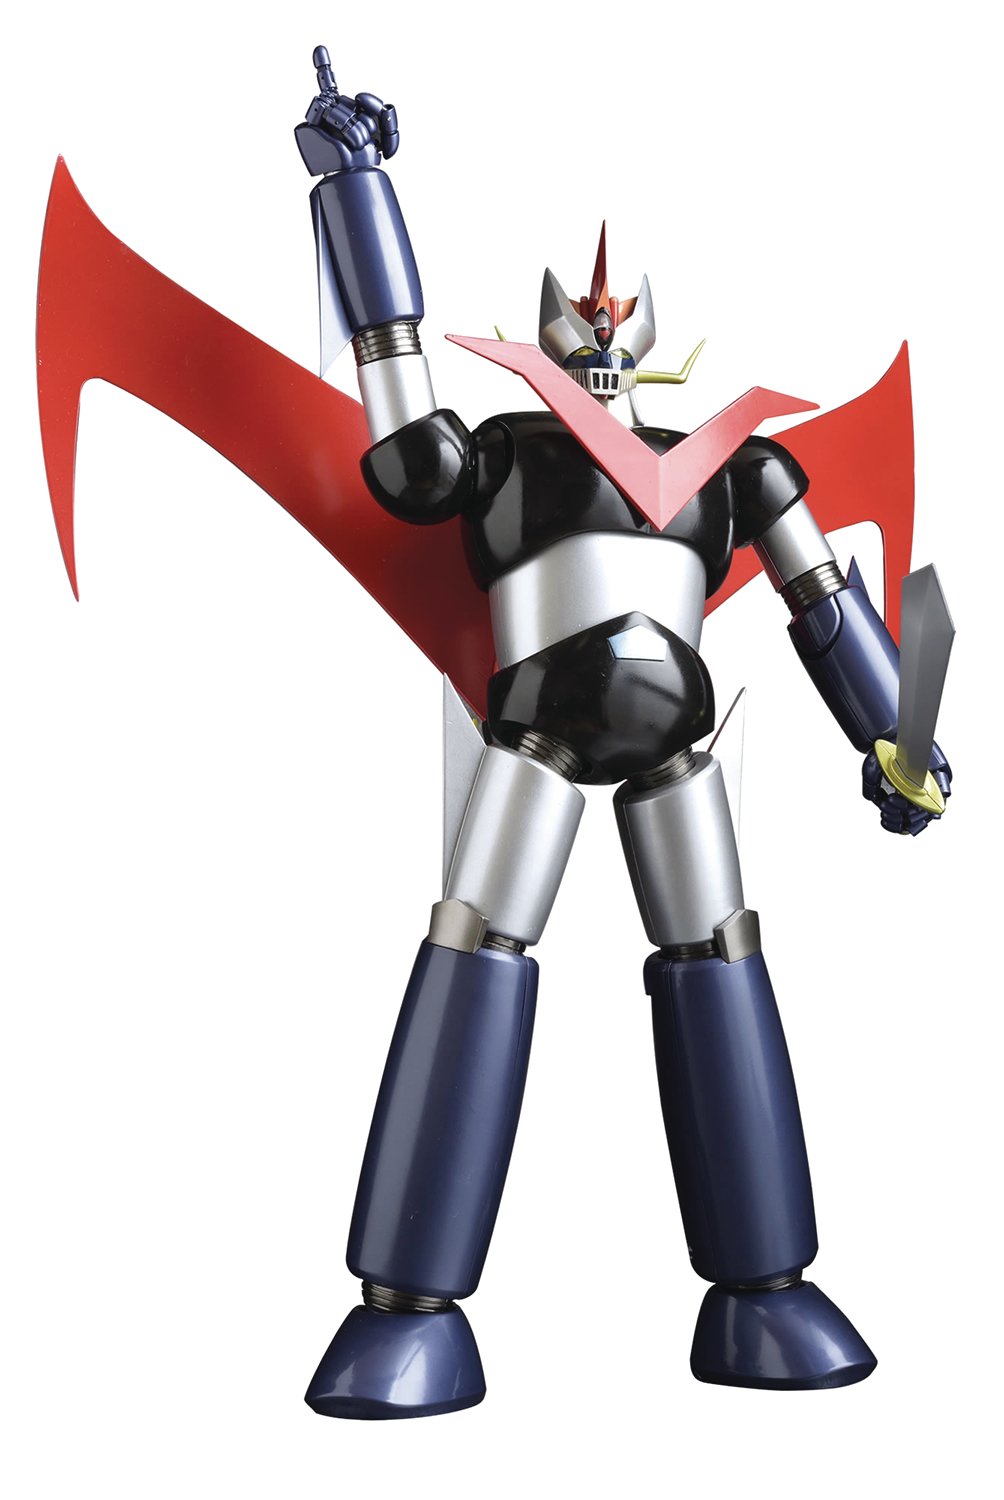 GRAND ACTION BIGSIZE MODEL GREAT MAZINGER FIGURE